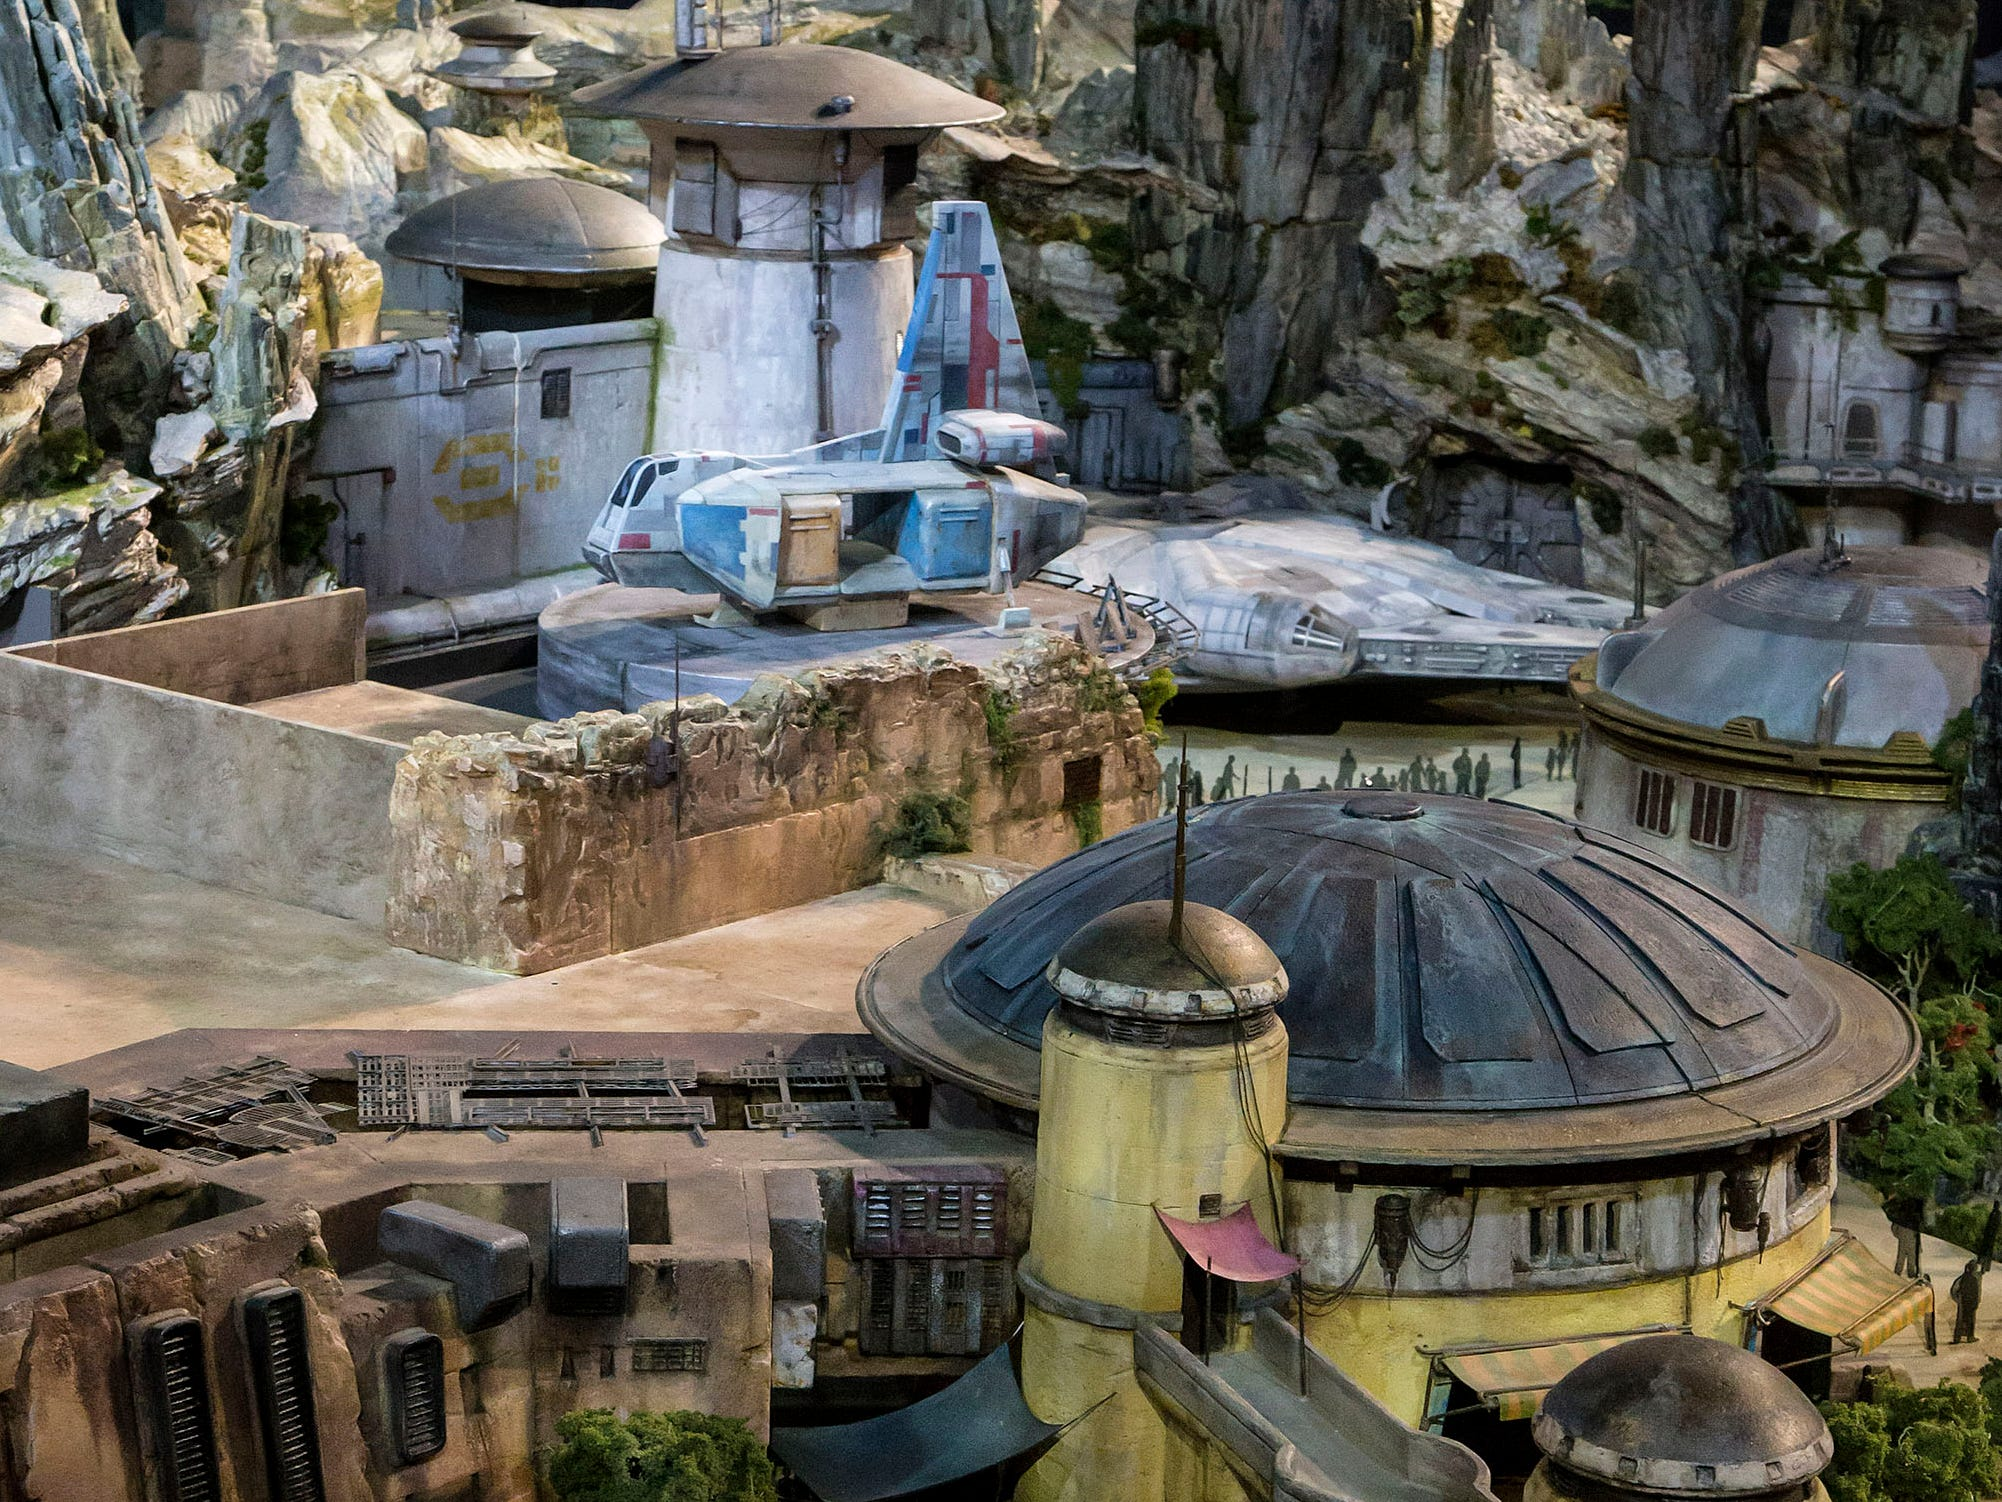 Black Spire Outpost, a village on the remote planet Batuu, is seen in an early model of Star Wars: Galaxy's Edge, which opens May 31, 2019 at Disneyland.